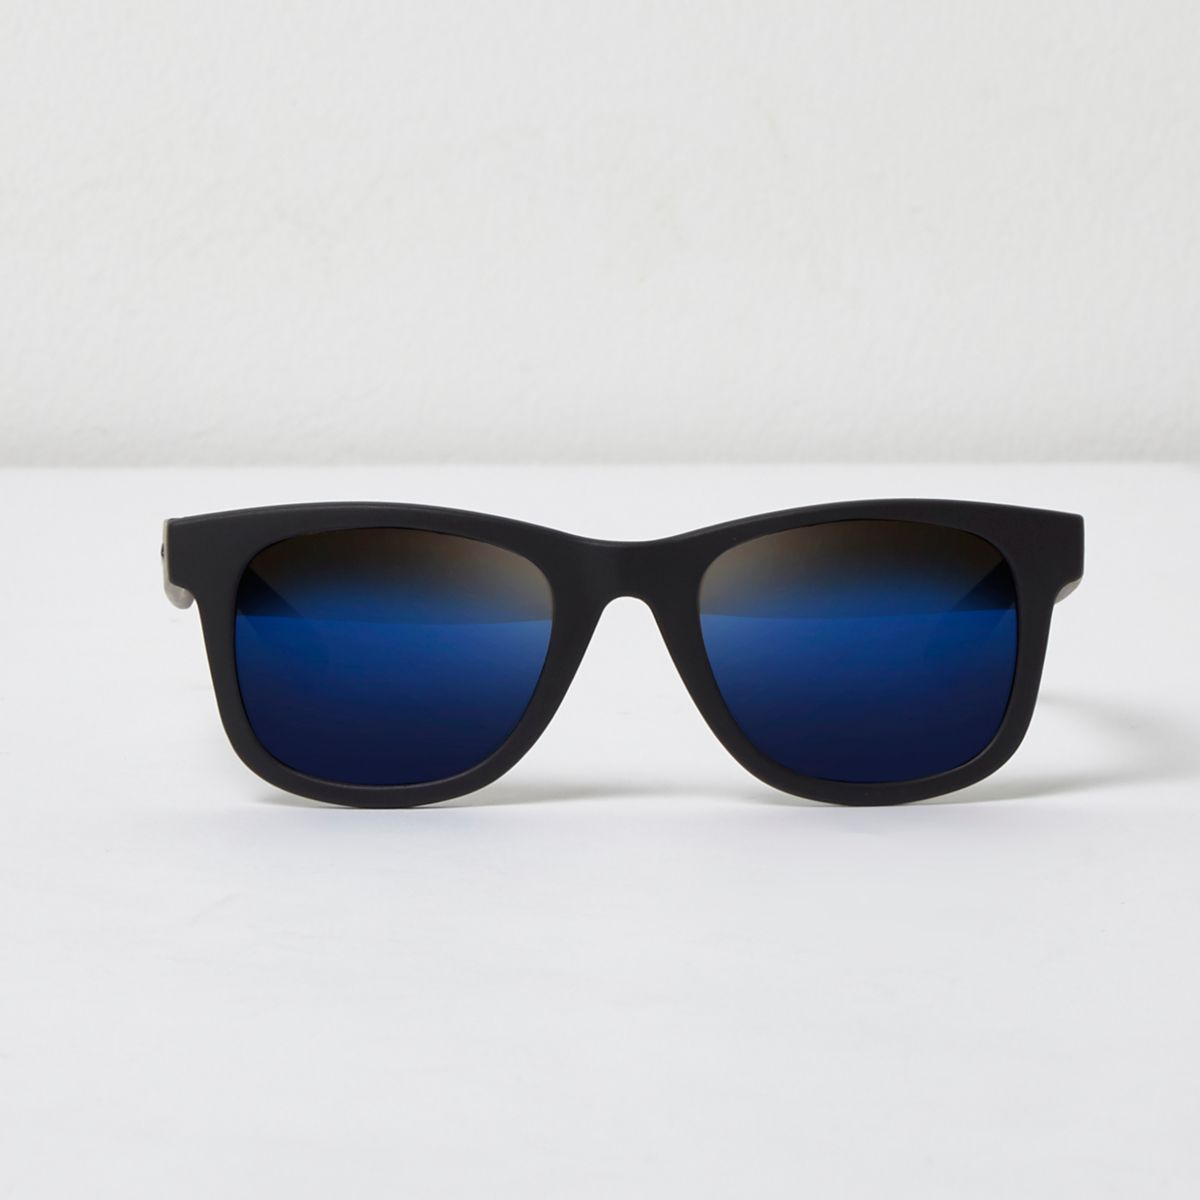 Boys black blue lens retro sunglasses